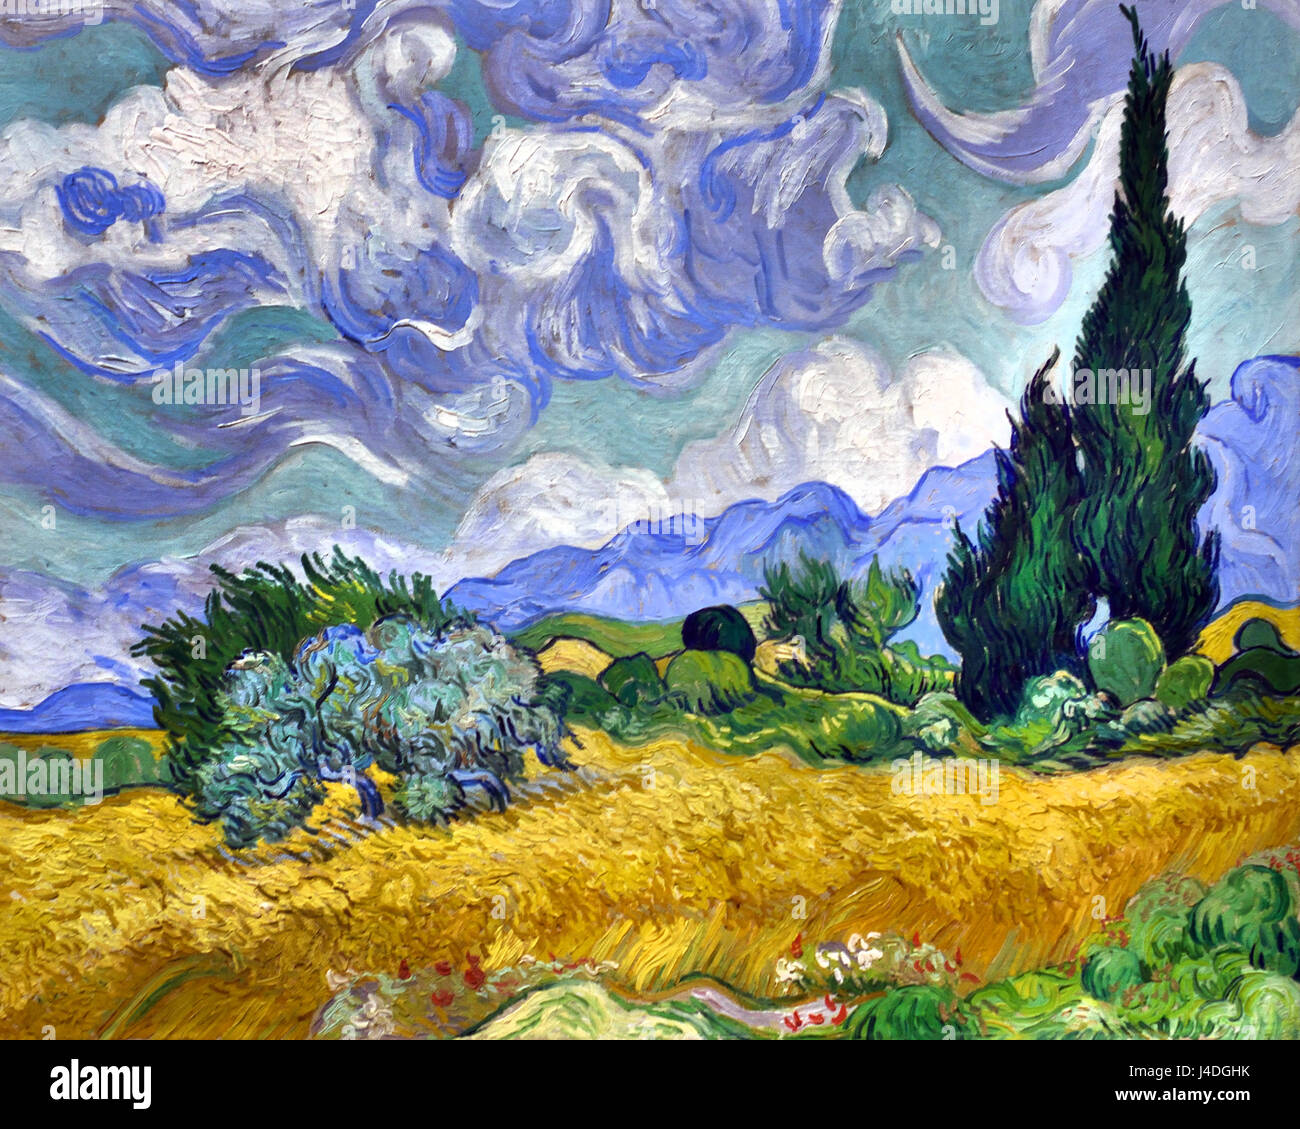 A Wheatfield with Cypresses 1889 Vincent van Gogh 1853– 1890 Dutch The Netherlands - Stock Image